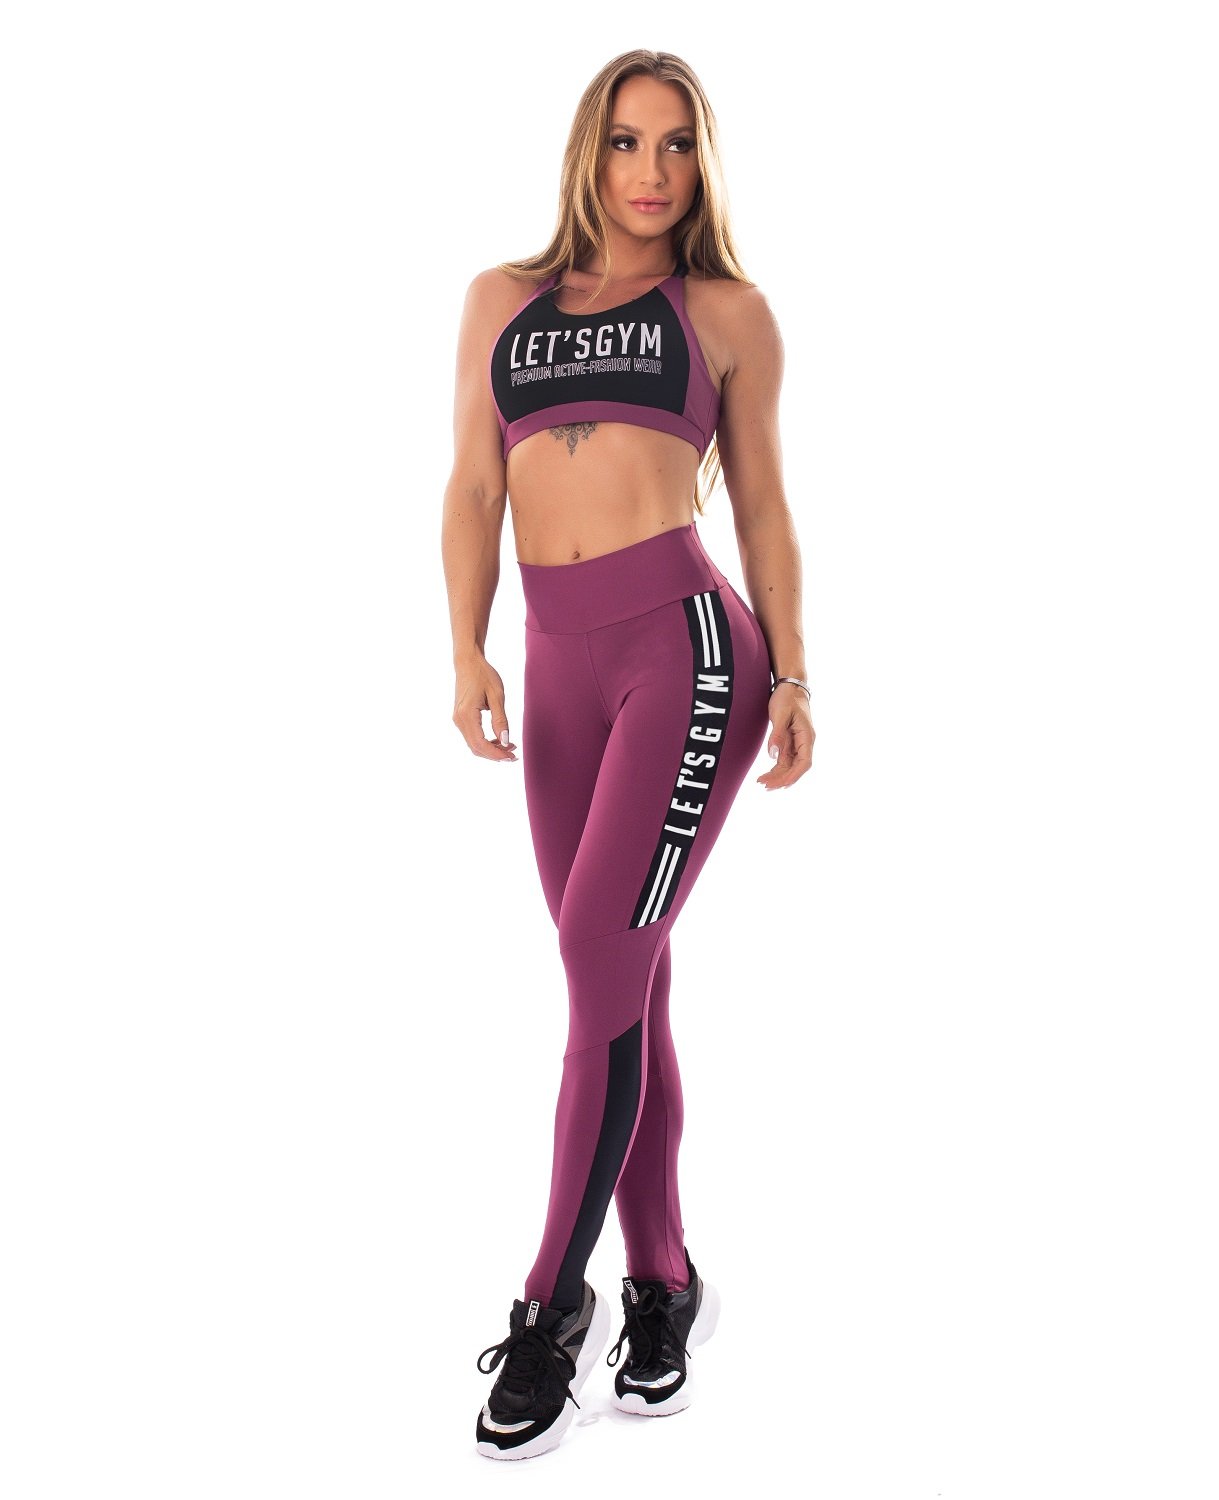 TOP ATHLETIC WOMAN LETSGYM